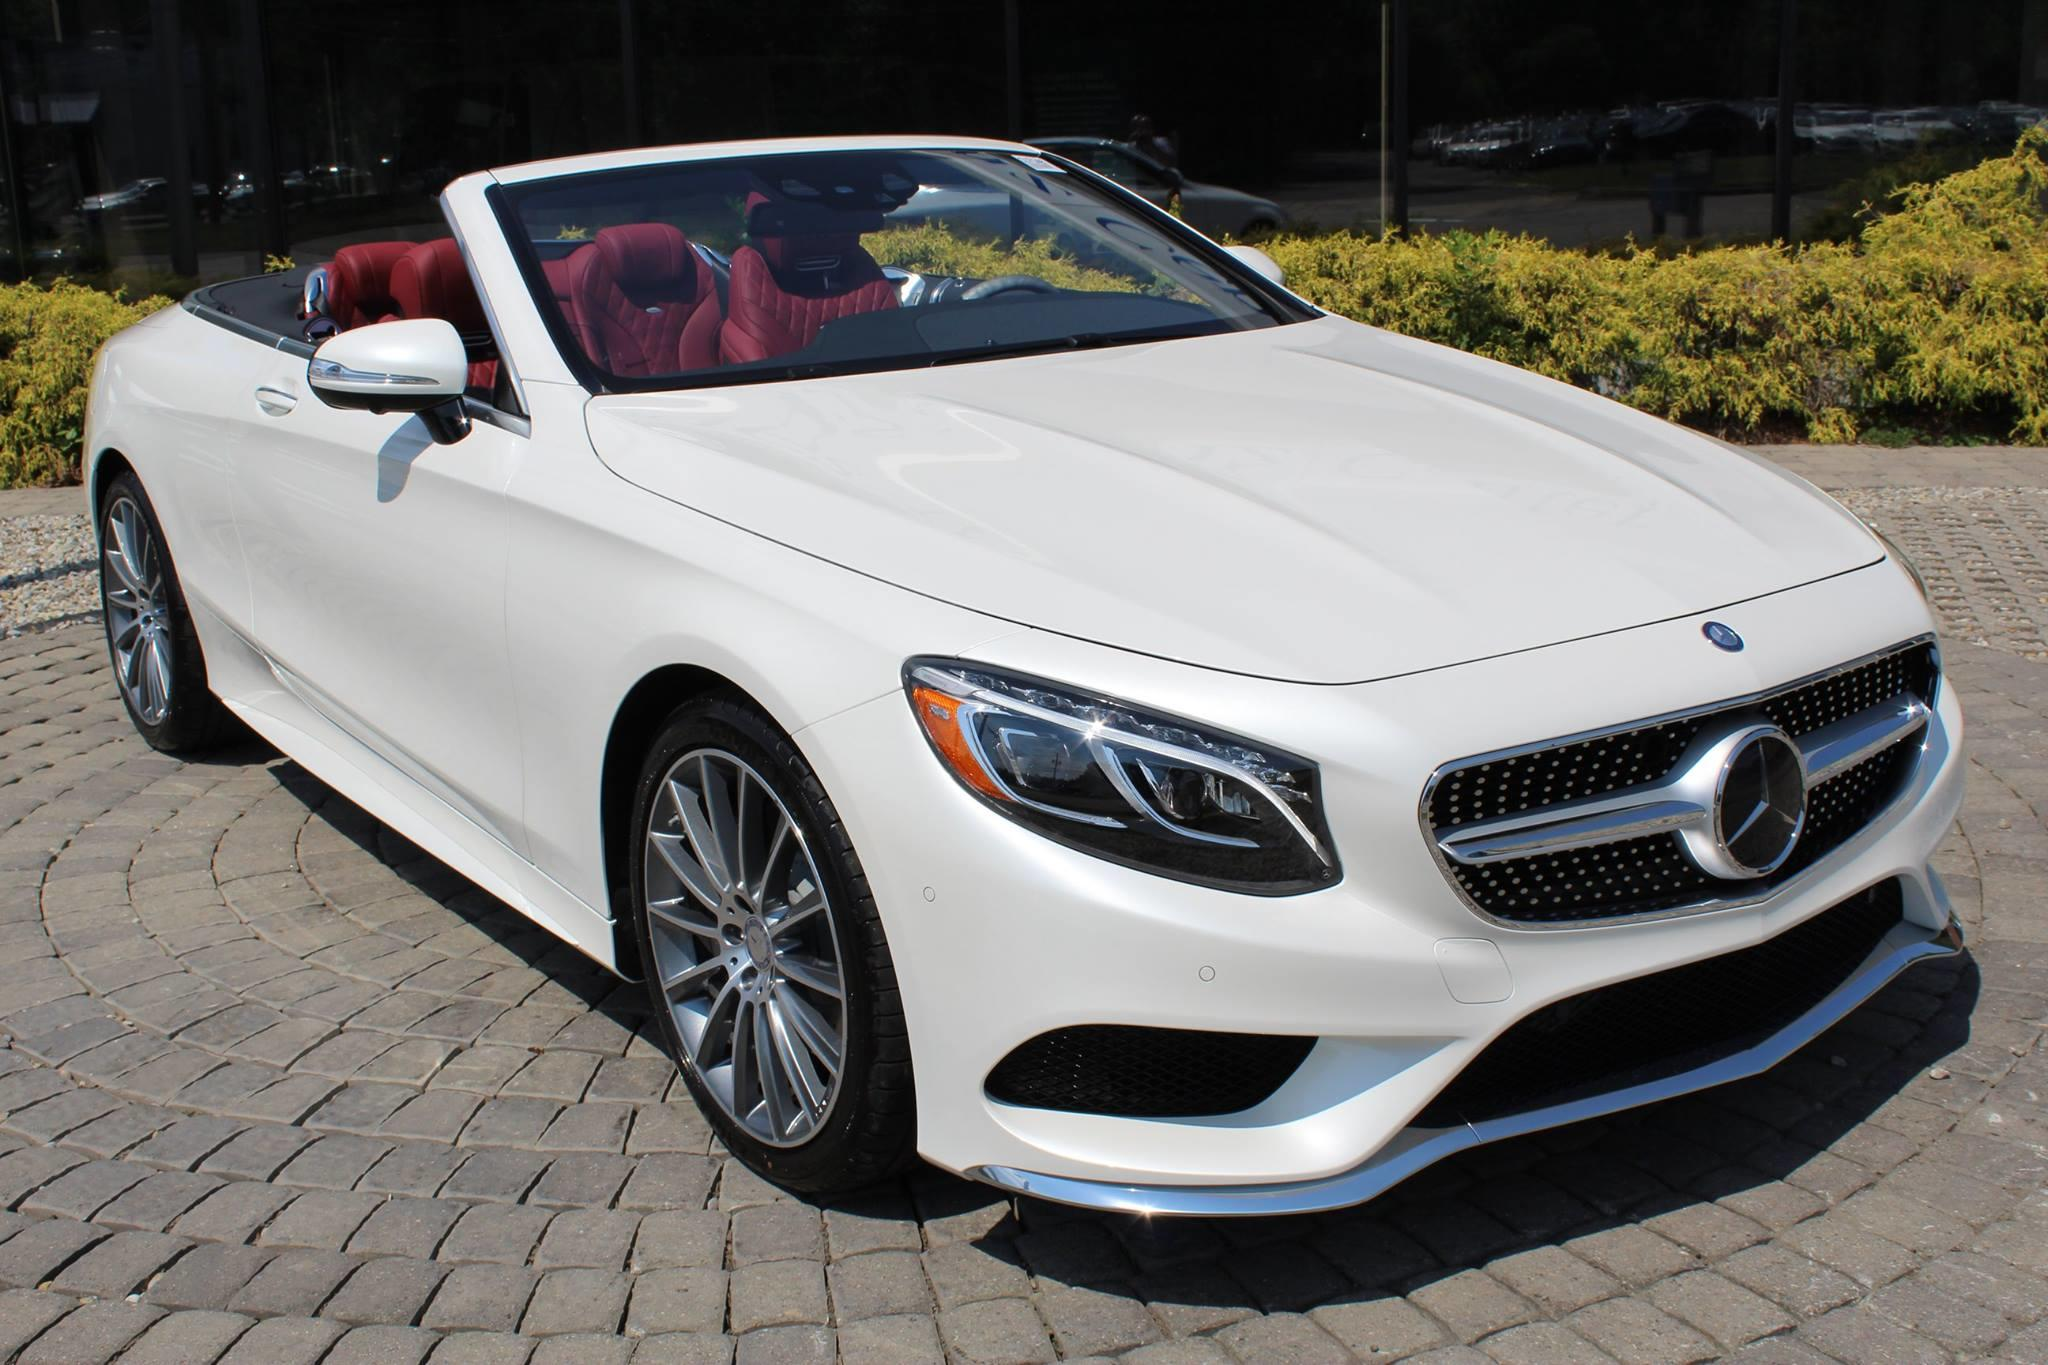 Mercedes benz of caldwell in fairfield nj 07004 for Mercedes benz nj